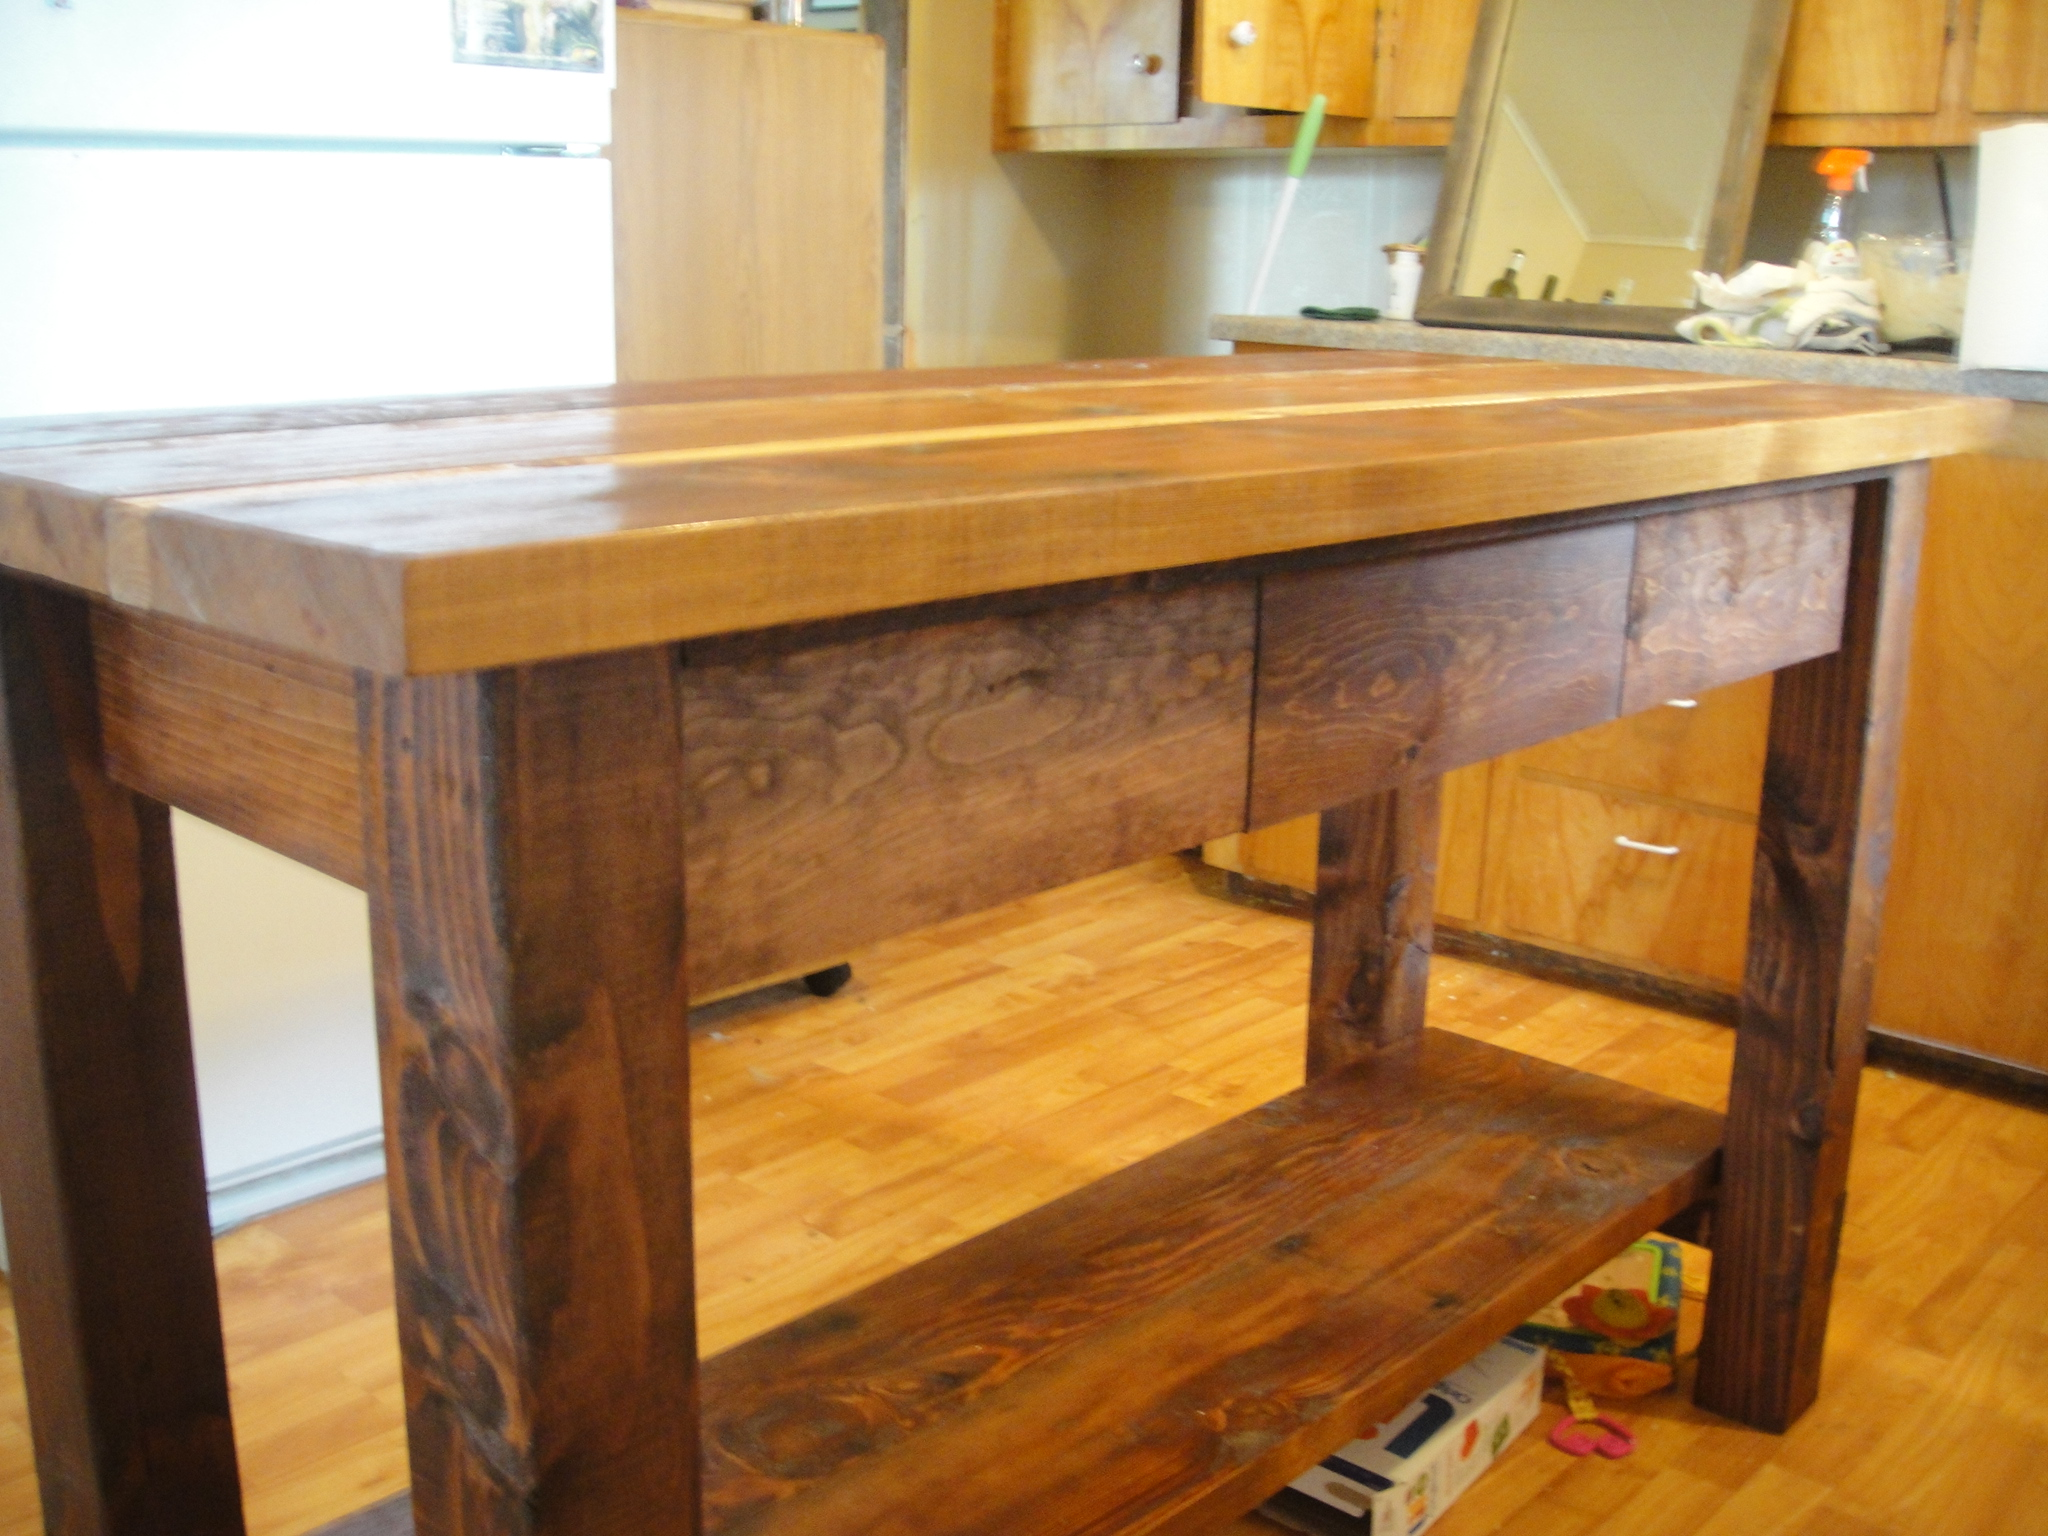 Kitchen Island from Reclaimed Wood | Ana White